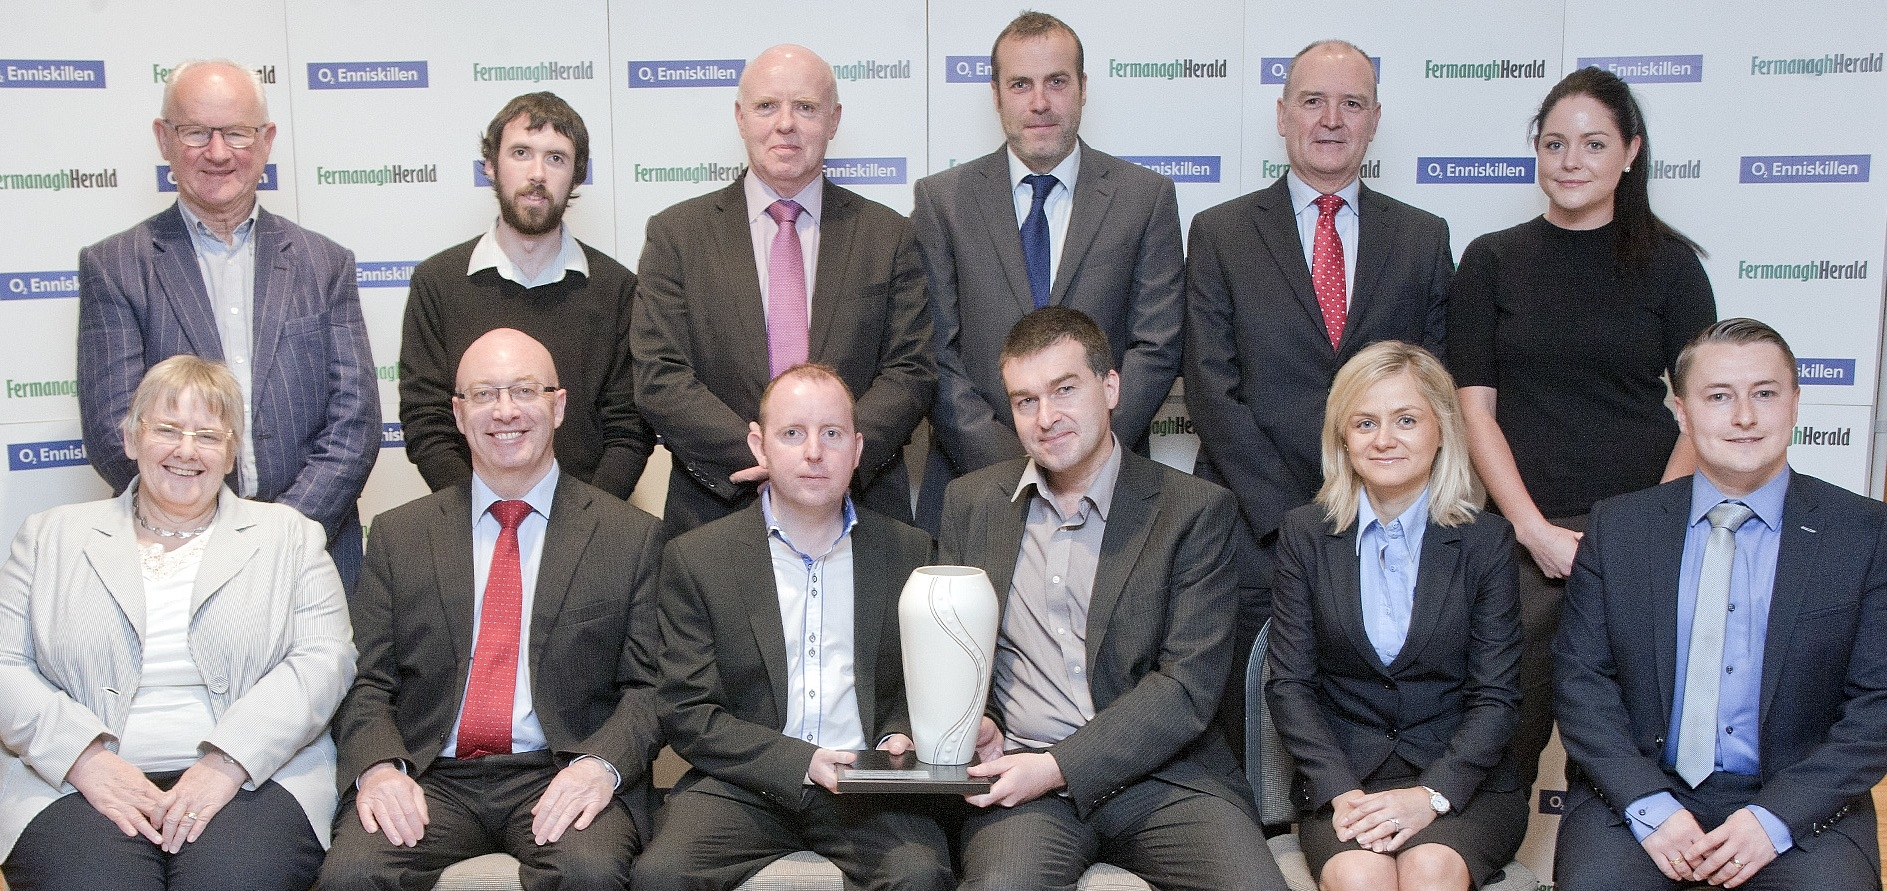 the launch of the 2015 Fermanagh Herald Business Awards (back row L-R): Ernie Fisher, The Fermanagh Trust; Conan Cox, 02 Enniskillen; Tom McBride, South West College; Sean Darcy, First Trust Bank; Michael Molloy, Cavanagh Kelly Chartered Accountants; Stephanie Dooris, Pizza Hut Delivery. (Front row L-R): Cllr Rosemary Barton, Vice Chair of Fermanagh Lakeland Tourism; Cllr Thomas O'Reilly, Chair of Fermanagh & Omagh District Council; Declan Devlin, 02 Enniskillen; Maurice Kennedy, Fermanagh Herald editor; Agnieszka Szczepanek, 02 Enniskillen and Darwin Allen, GDP Partnership.